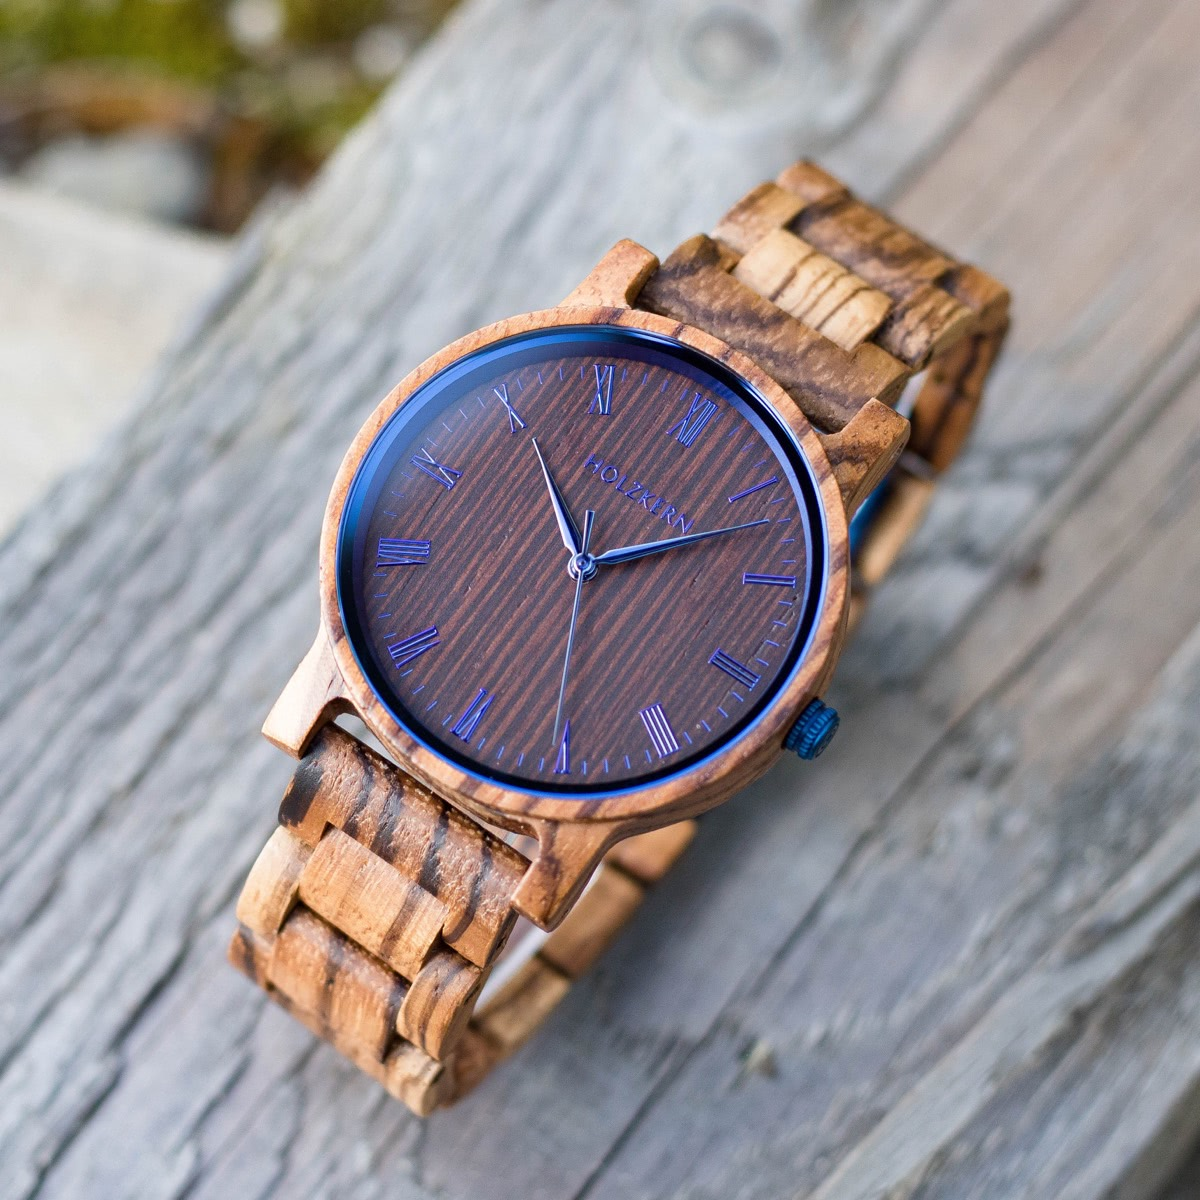 Wooden watch Fall Morning by Holzkern with blue steel elements